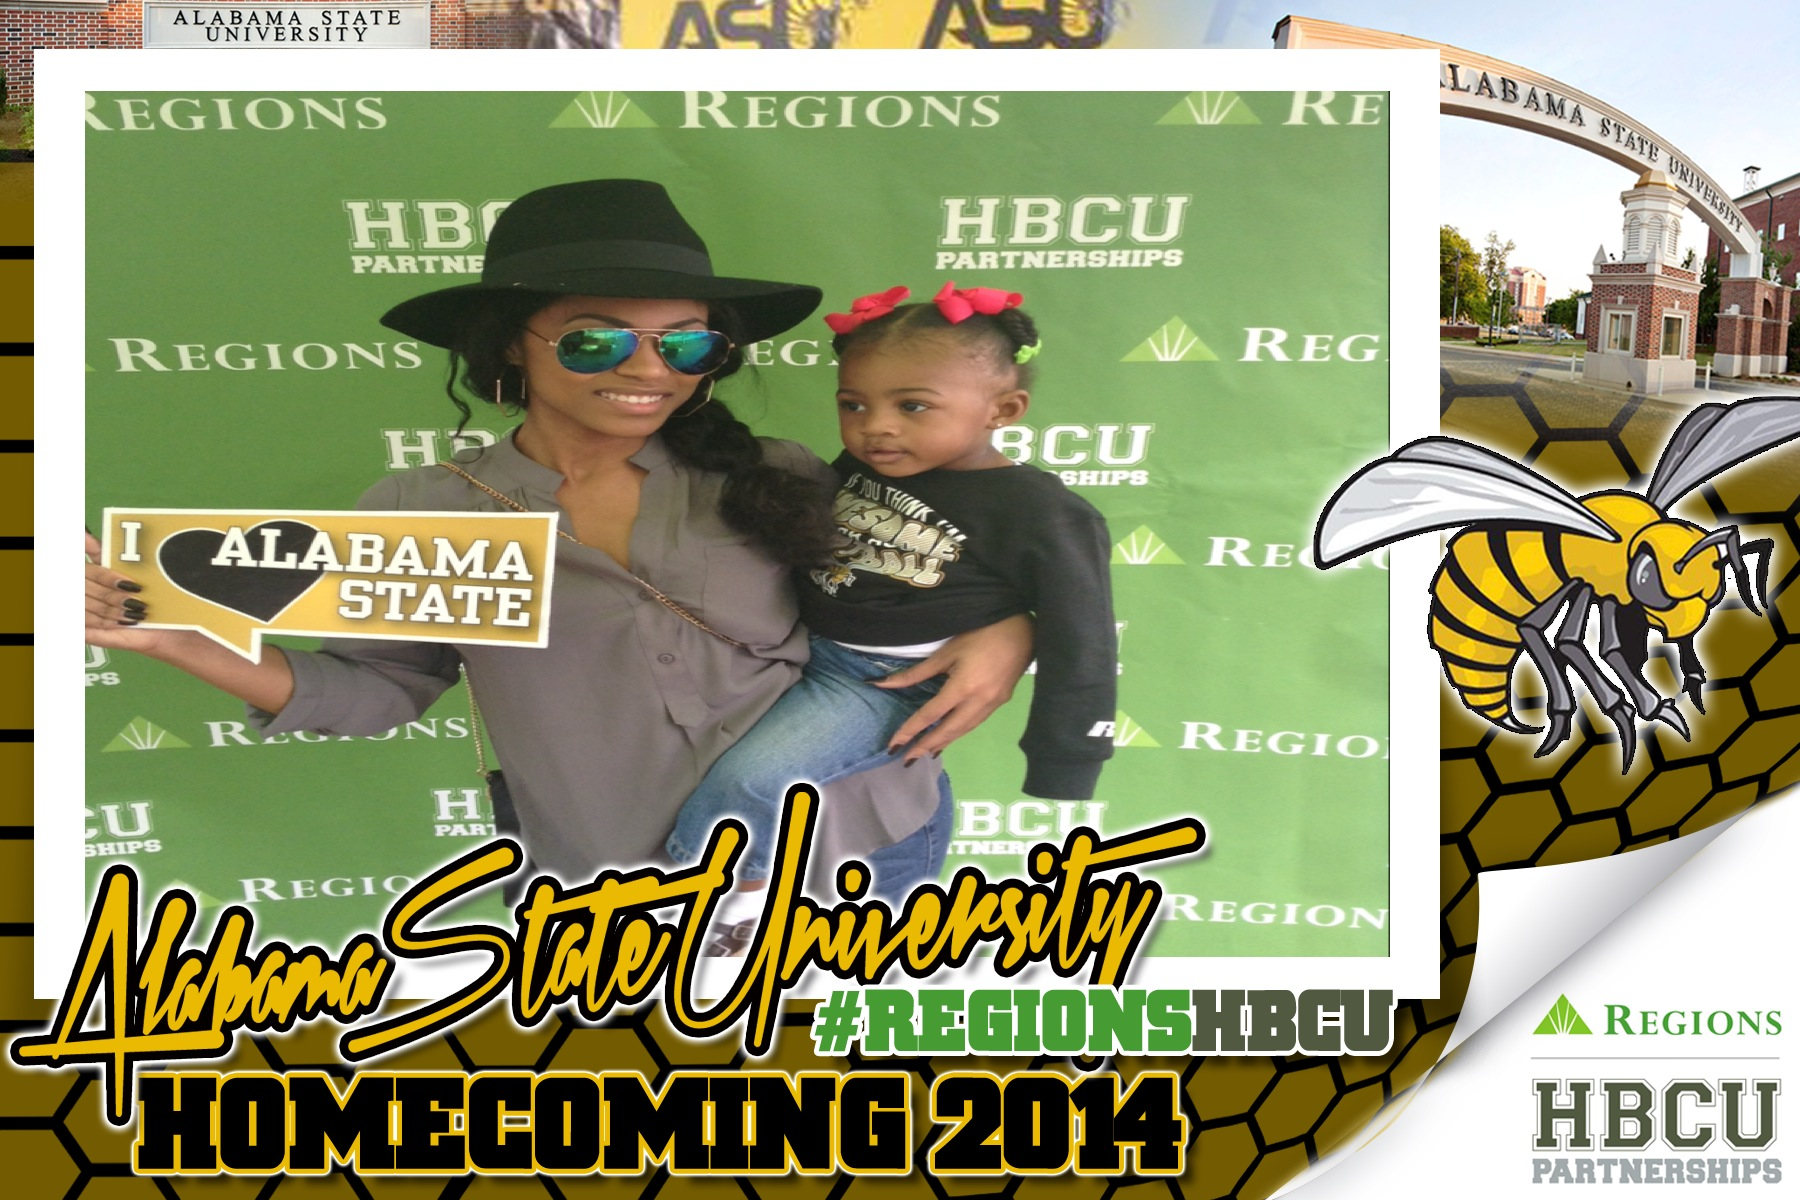 Regions HBCU ASU Homecoming